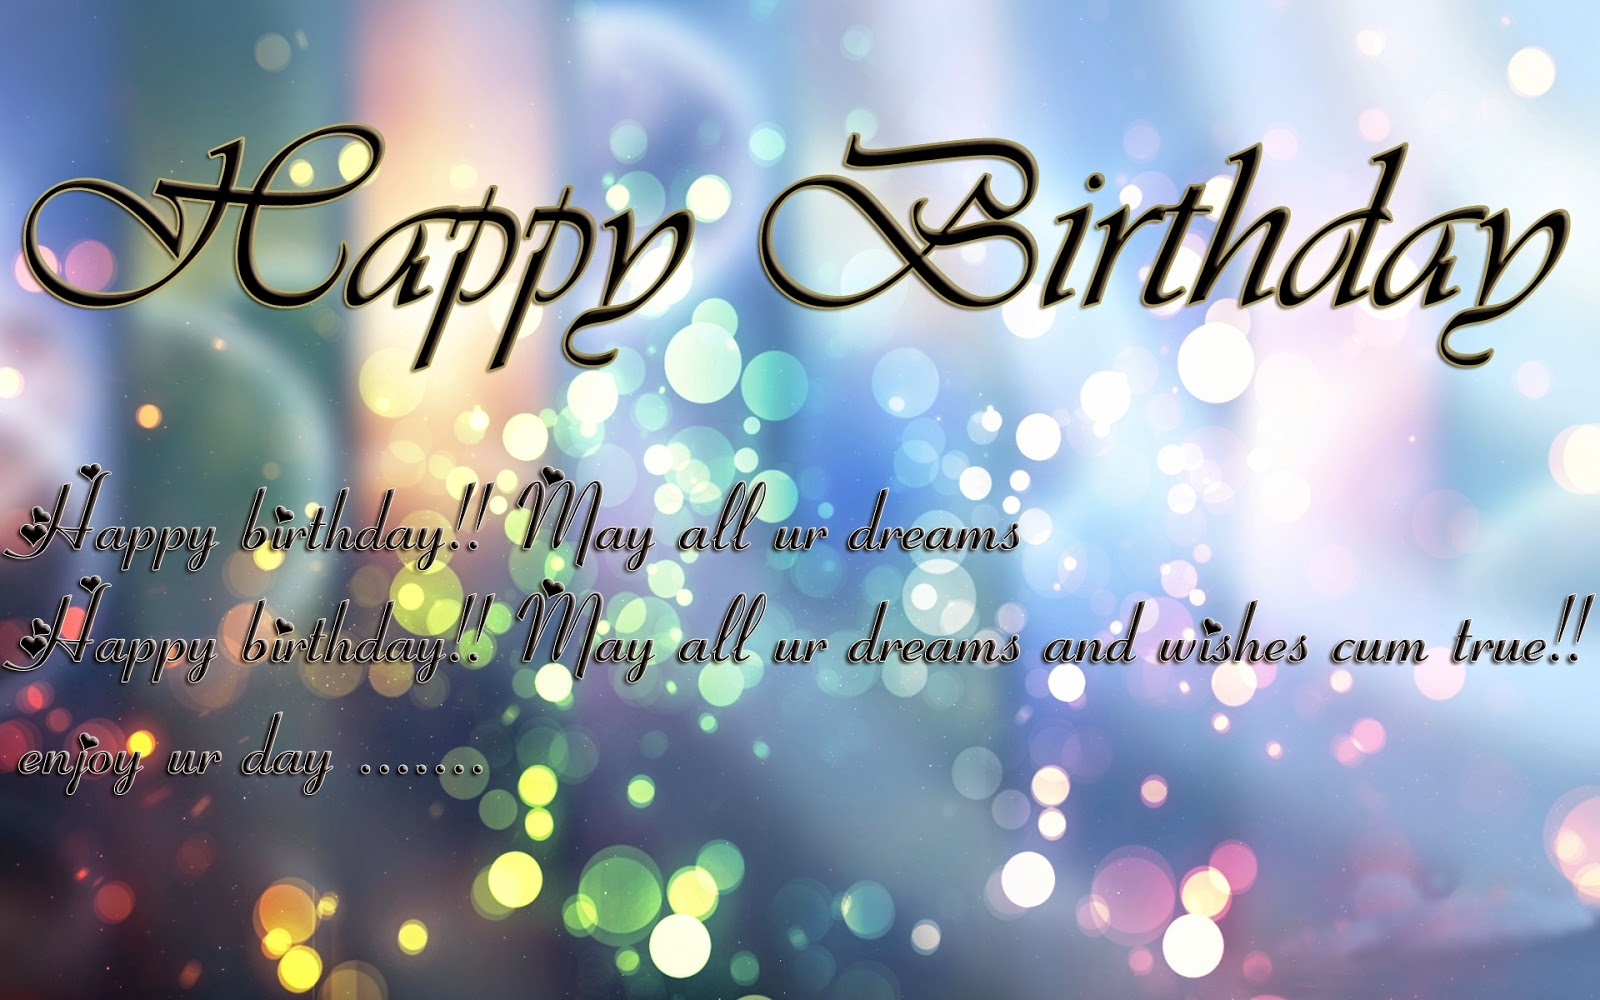 happy birthday images hd for friend ; 113148-Happy-Birthday